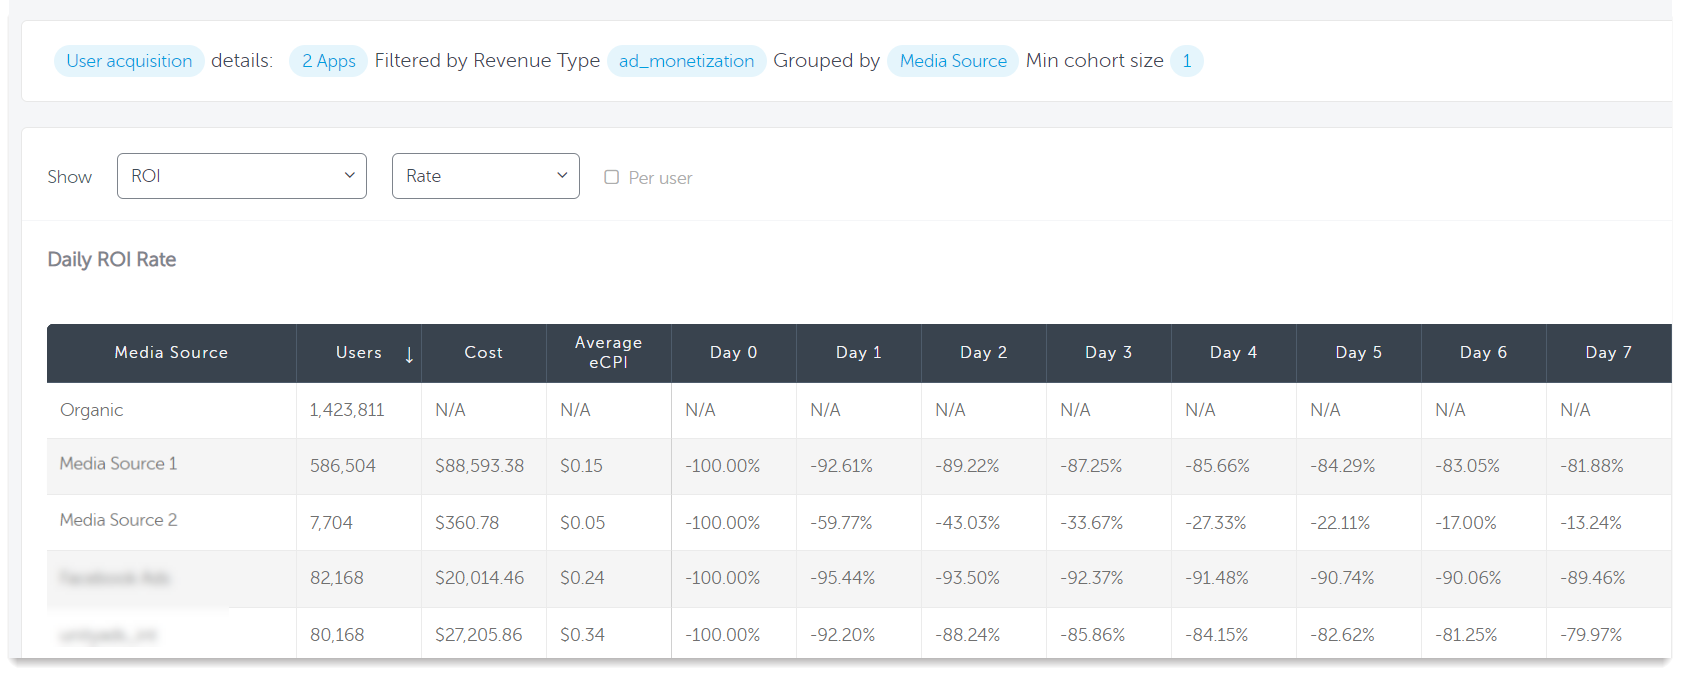 AppsFlyer Cohort report for ad monetization in gaming app